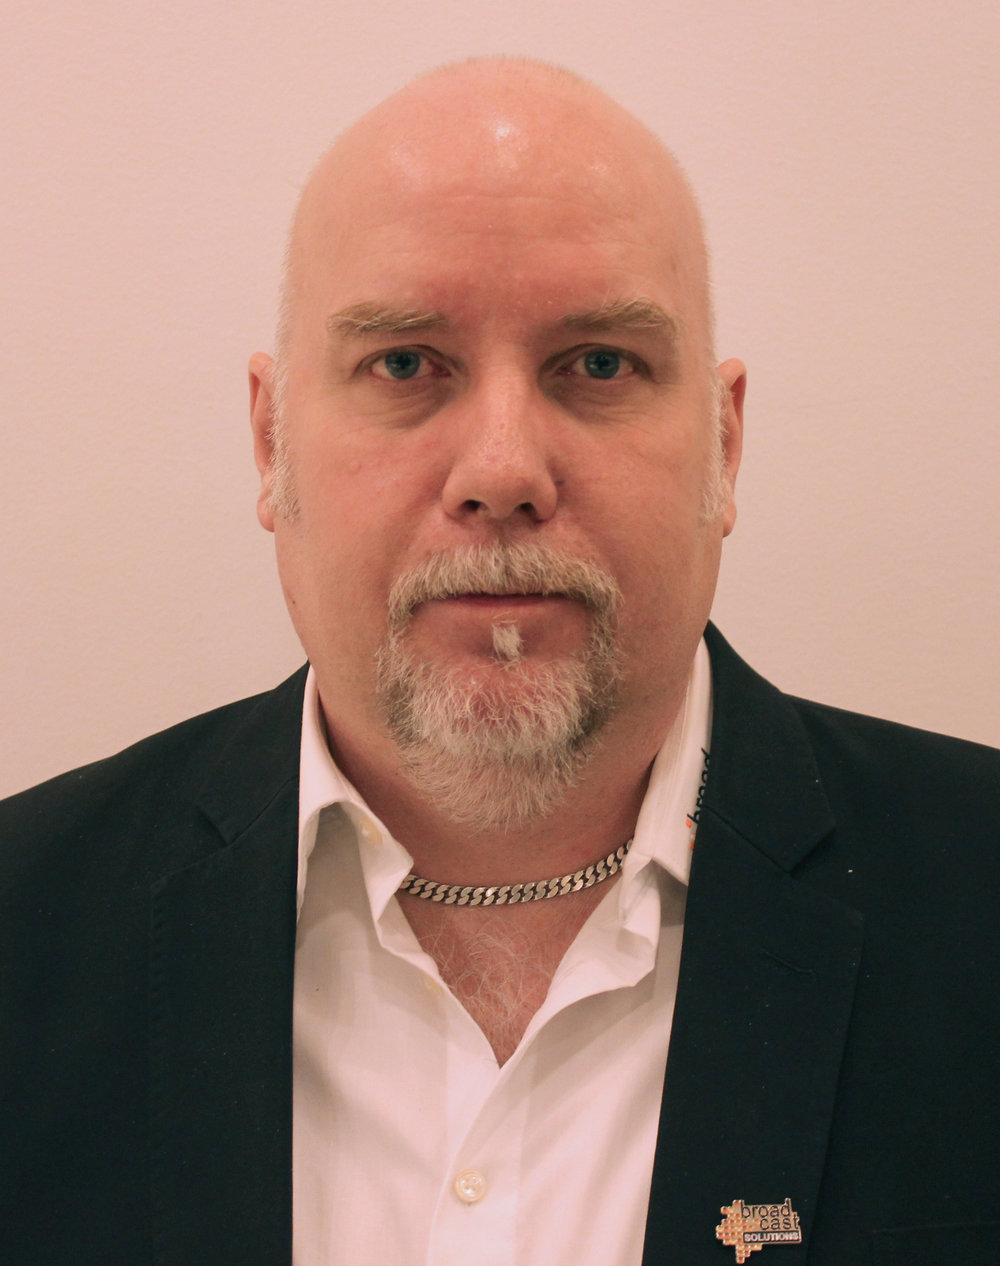 Broadcast Solutions Director Business Development Peter Jakobsson